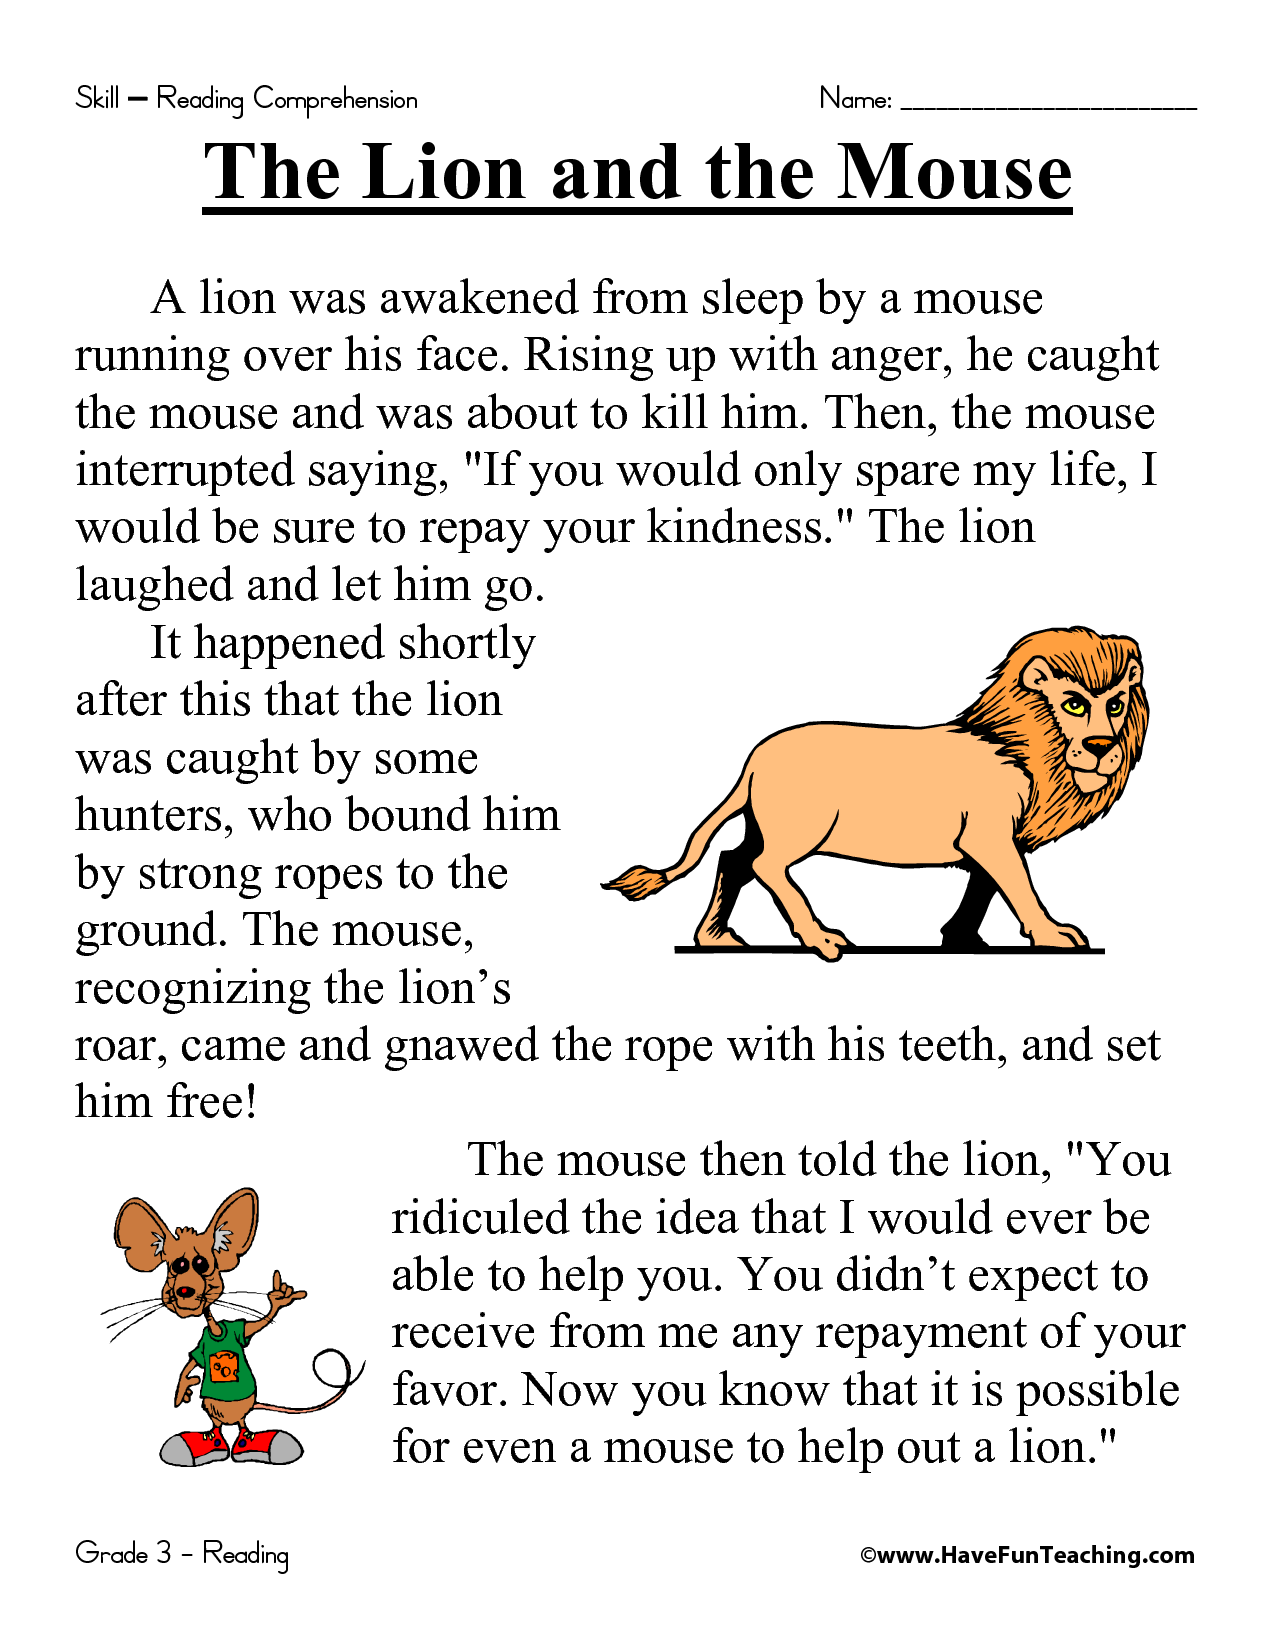 Worksheet 2nd Grade Reading Comprehension Printables first grade reading comprehension worksheets the lion and mouse worksheet